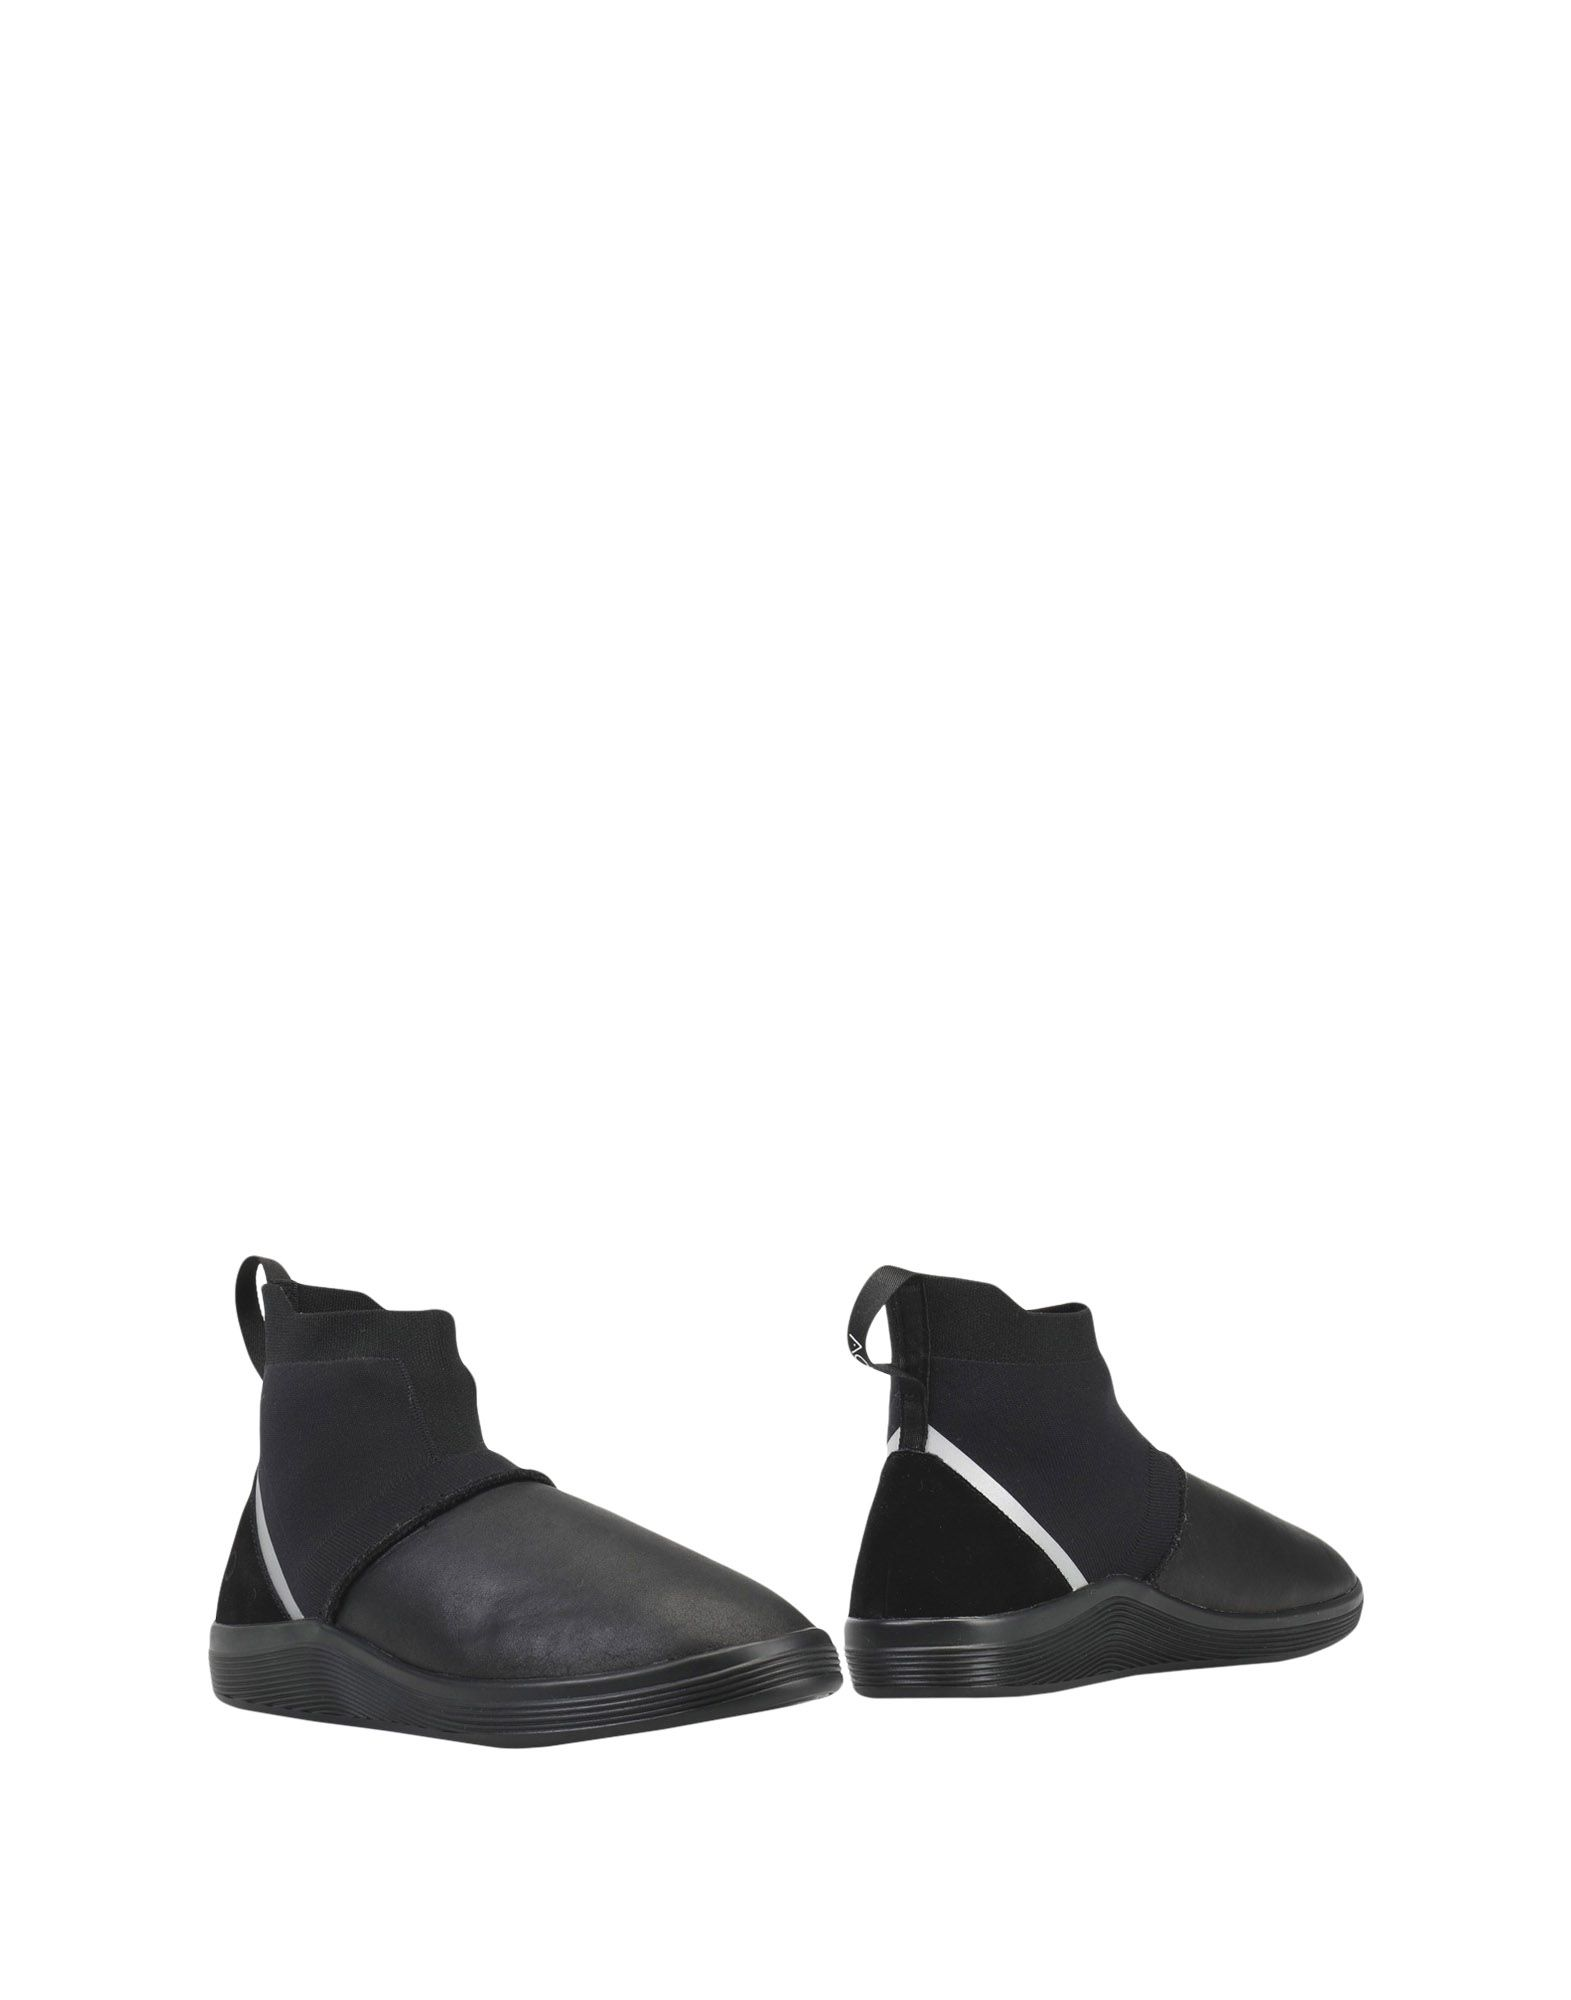 ADNO &Reg; Ankle Boots in Black